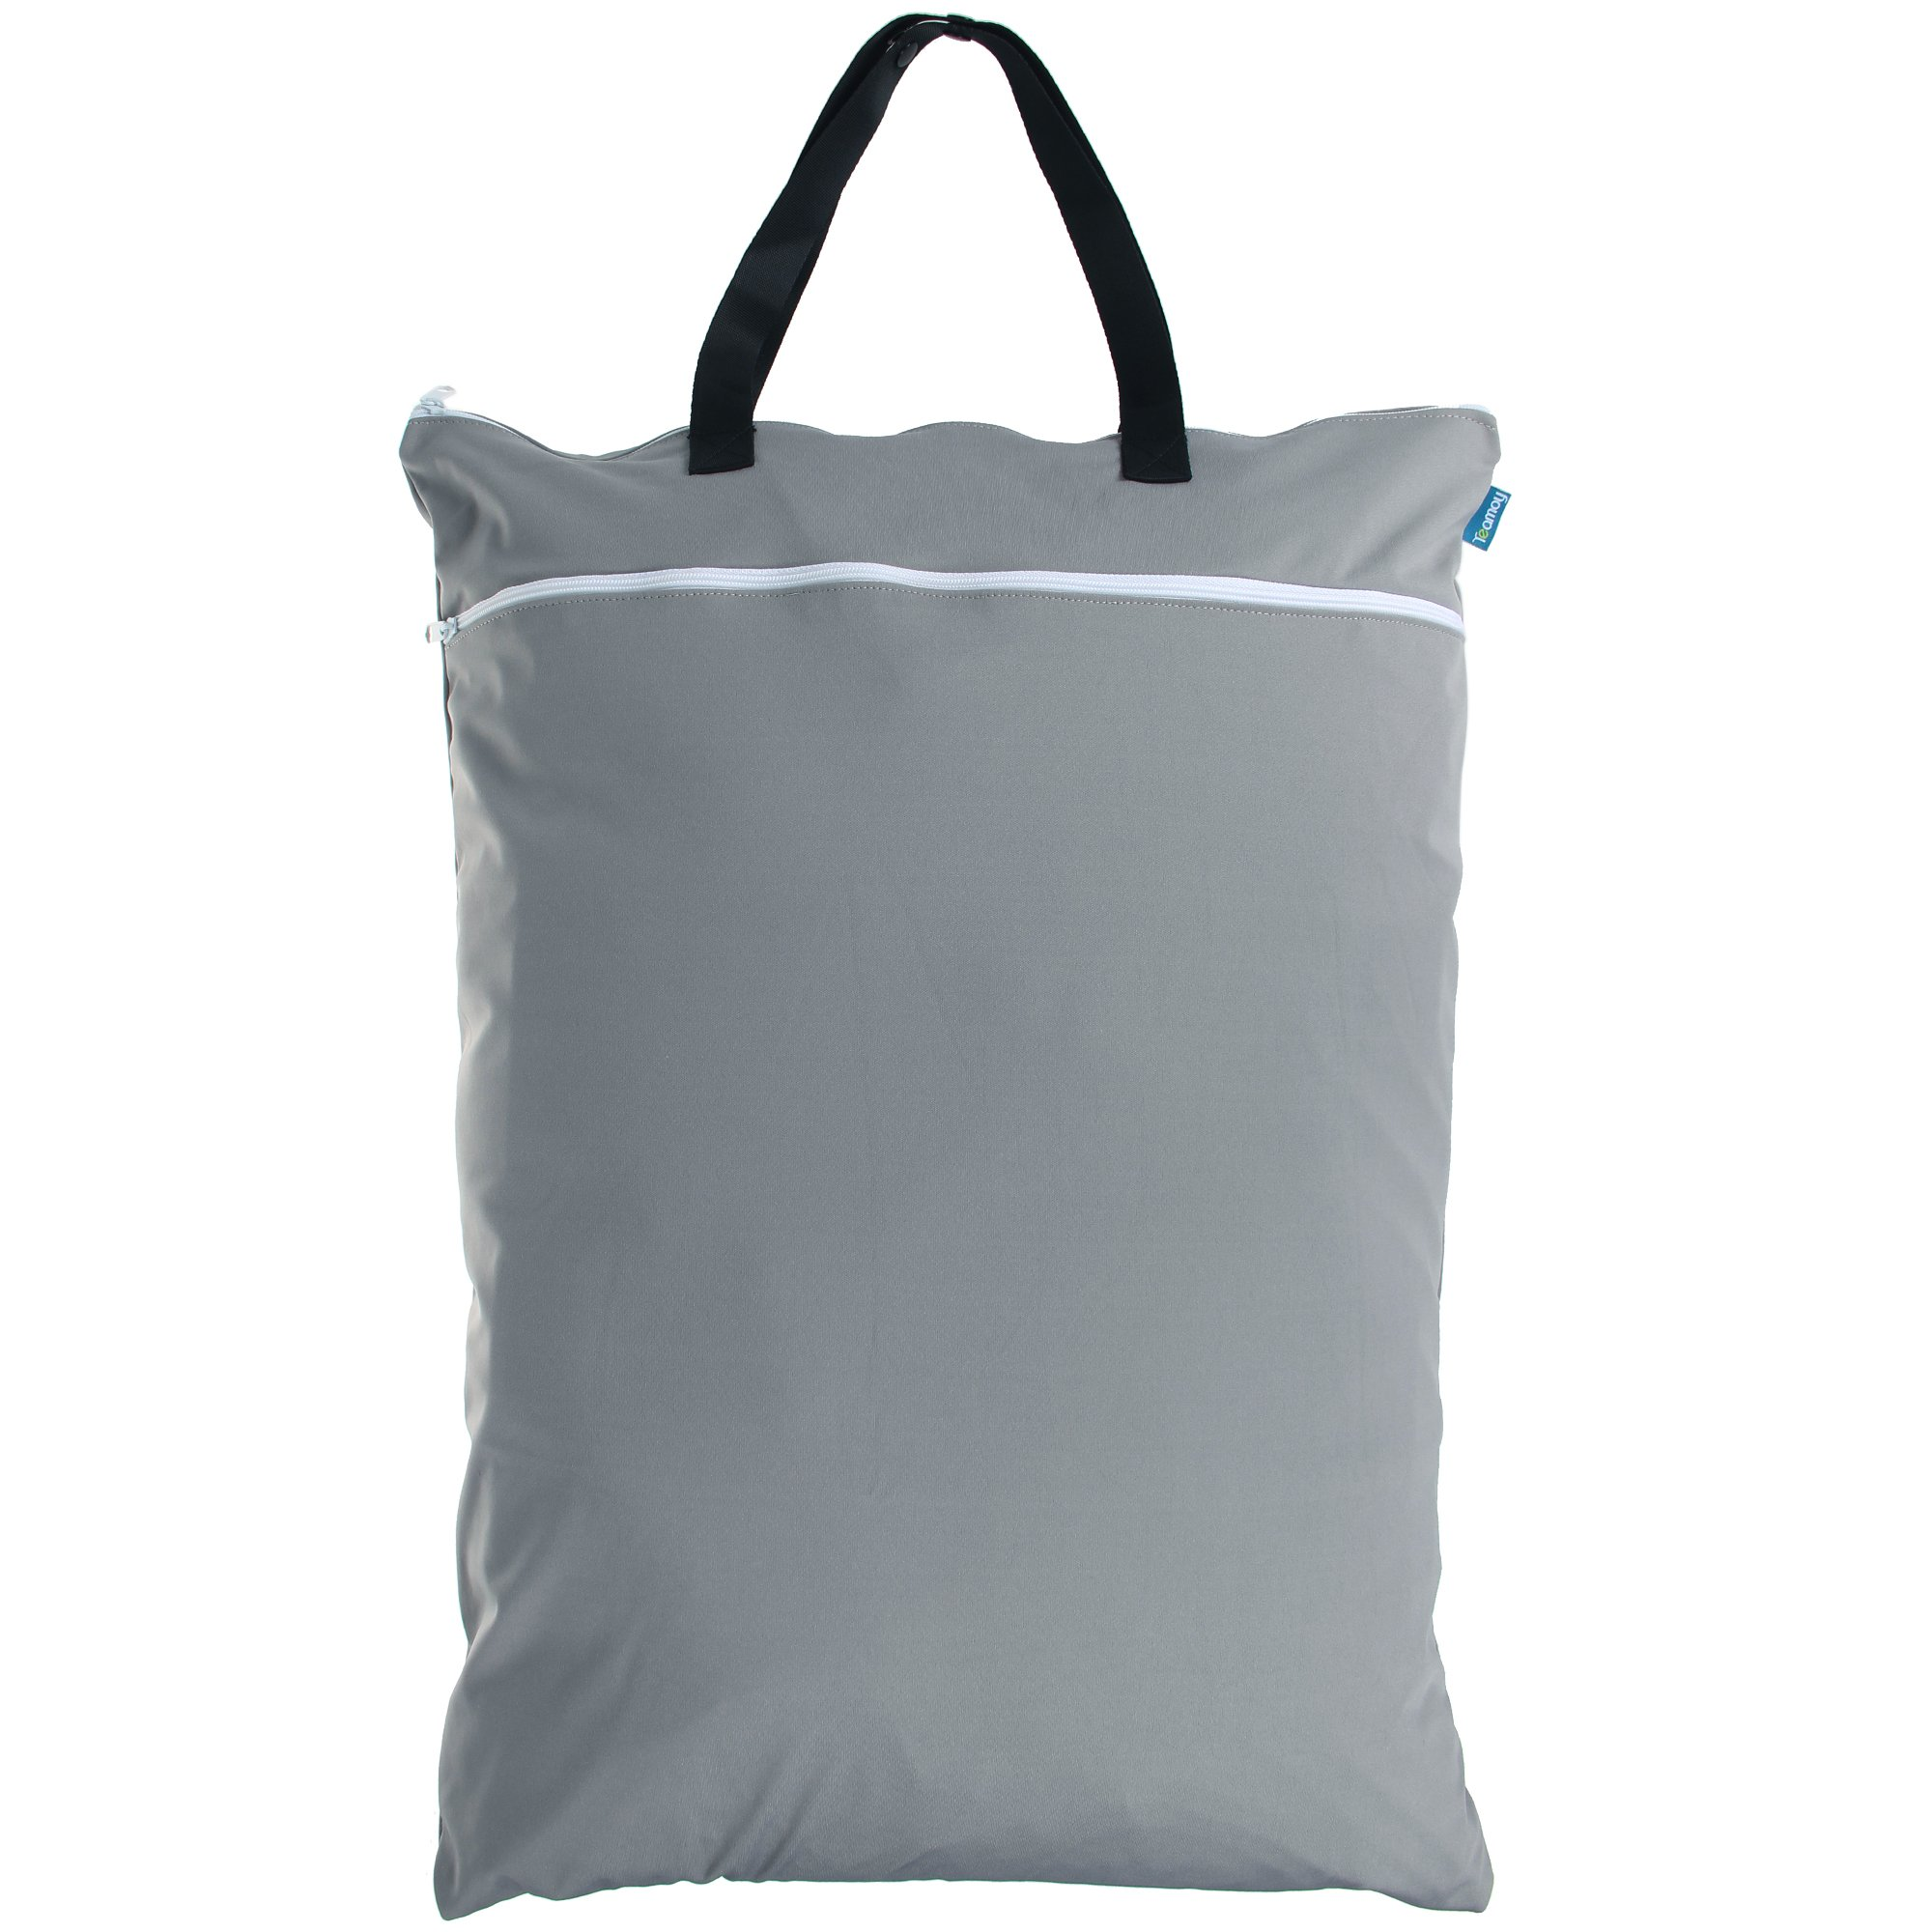 Teamoy Travel Hanging Wet Dry Bag(24.7×18 inches) for Cloth Diapers Organizer Tote Bag (XL, Slate)